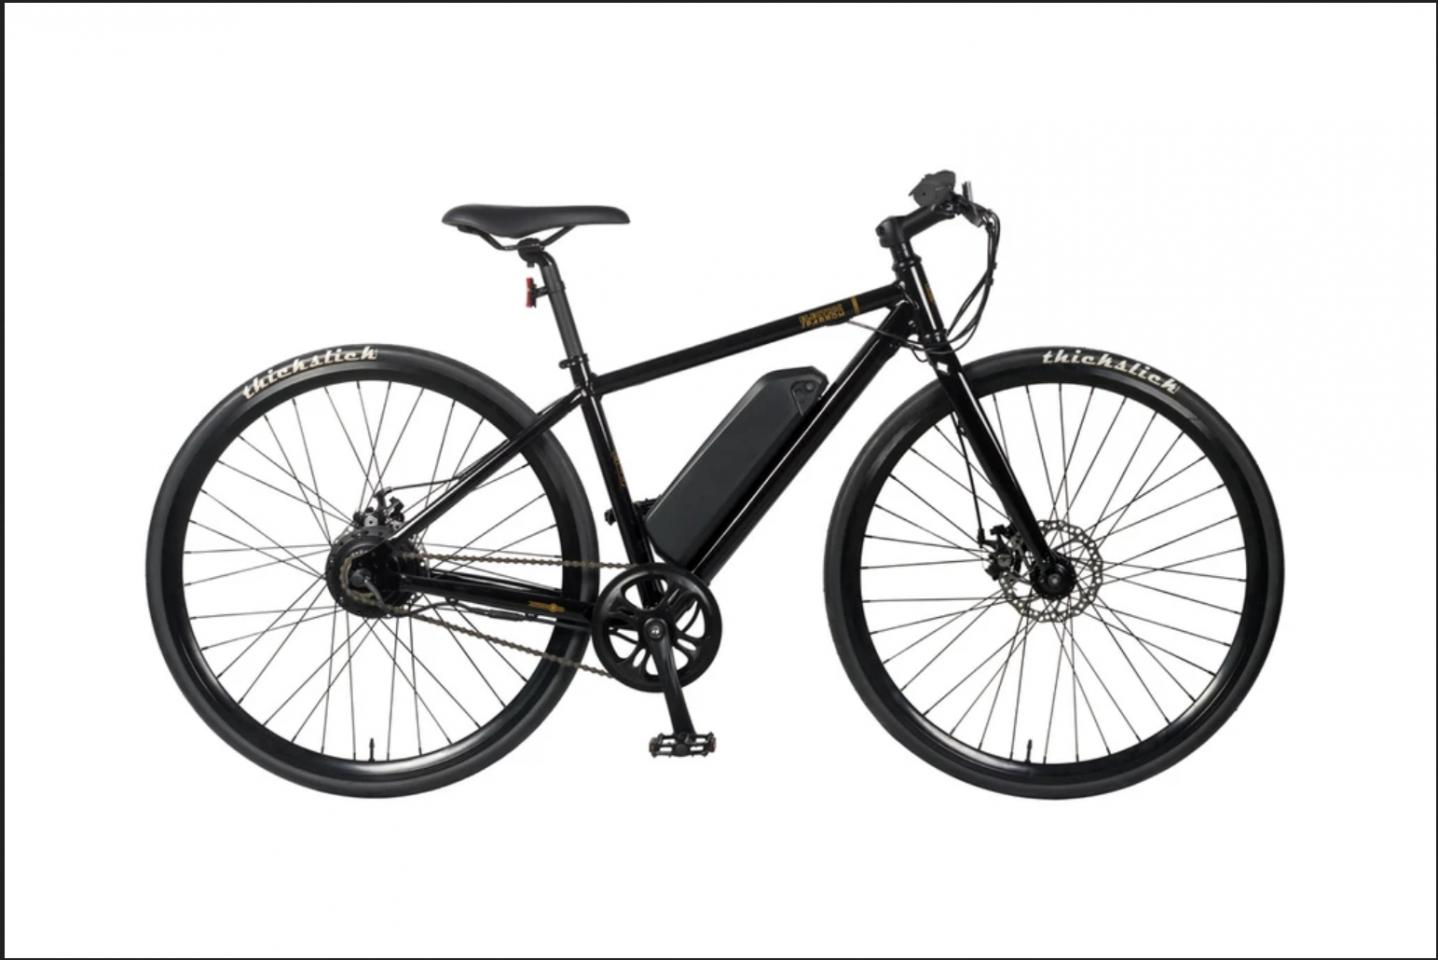 American Bike Manufacture Makes $900 Ebike